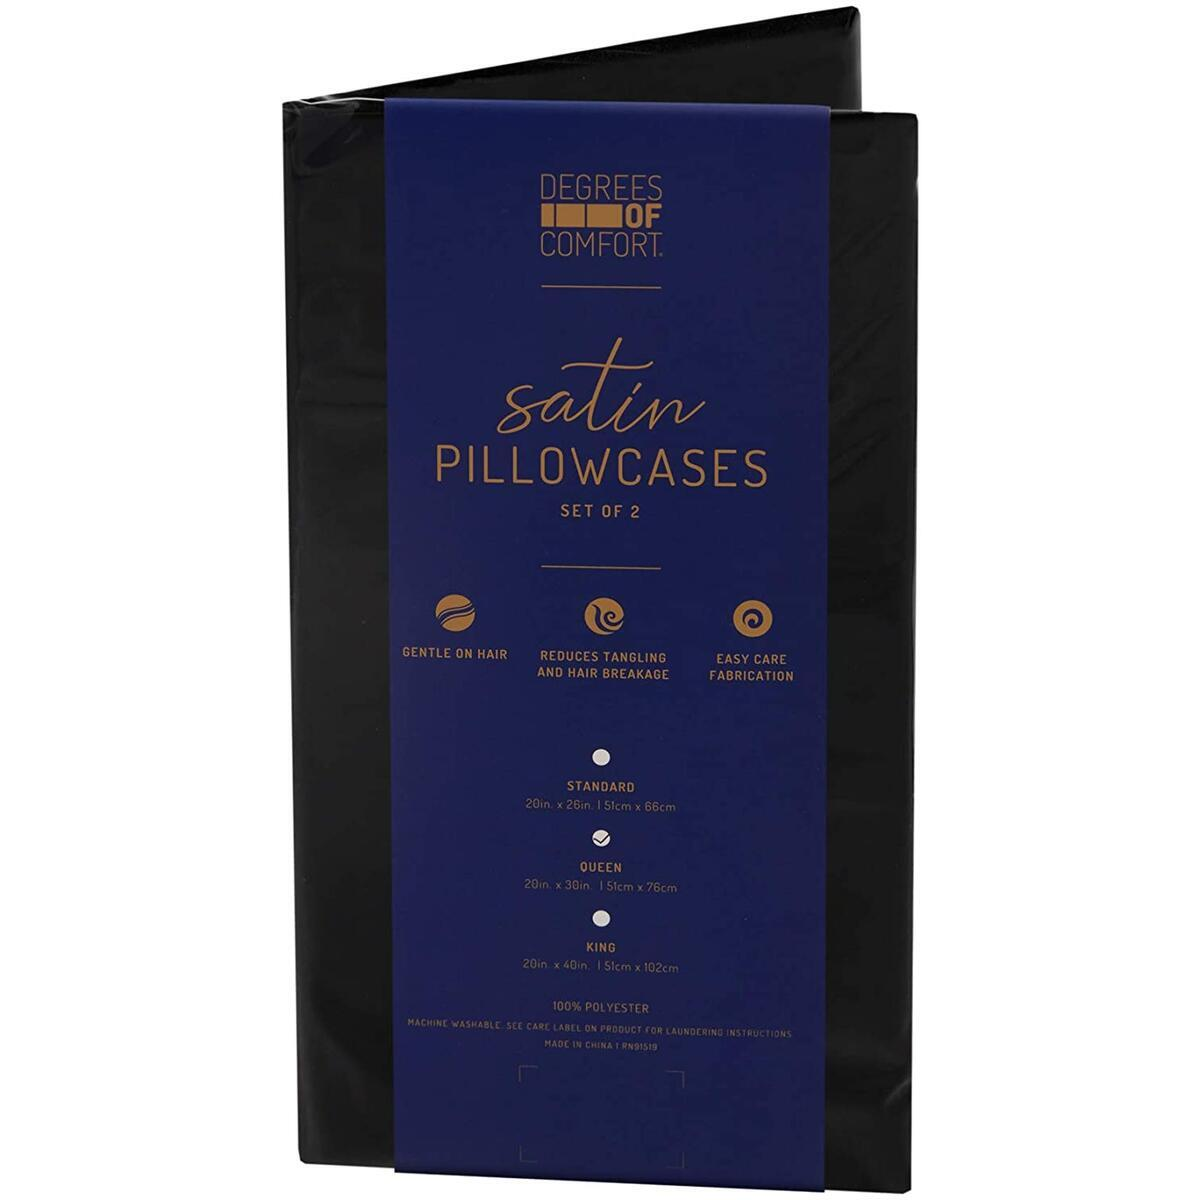 Satin Pillow Cases Standard Size Set of 2, Black 20 x 26 - Reduce Irritation & Frizzy | Satin Weave Cover for Silky Comfort | Retains Color in Easy Machine Wash & Dry